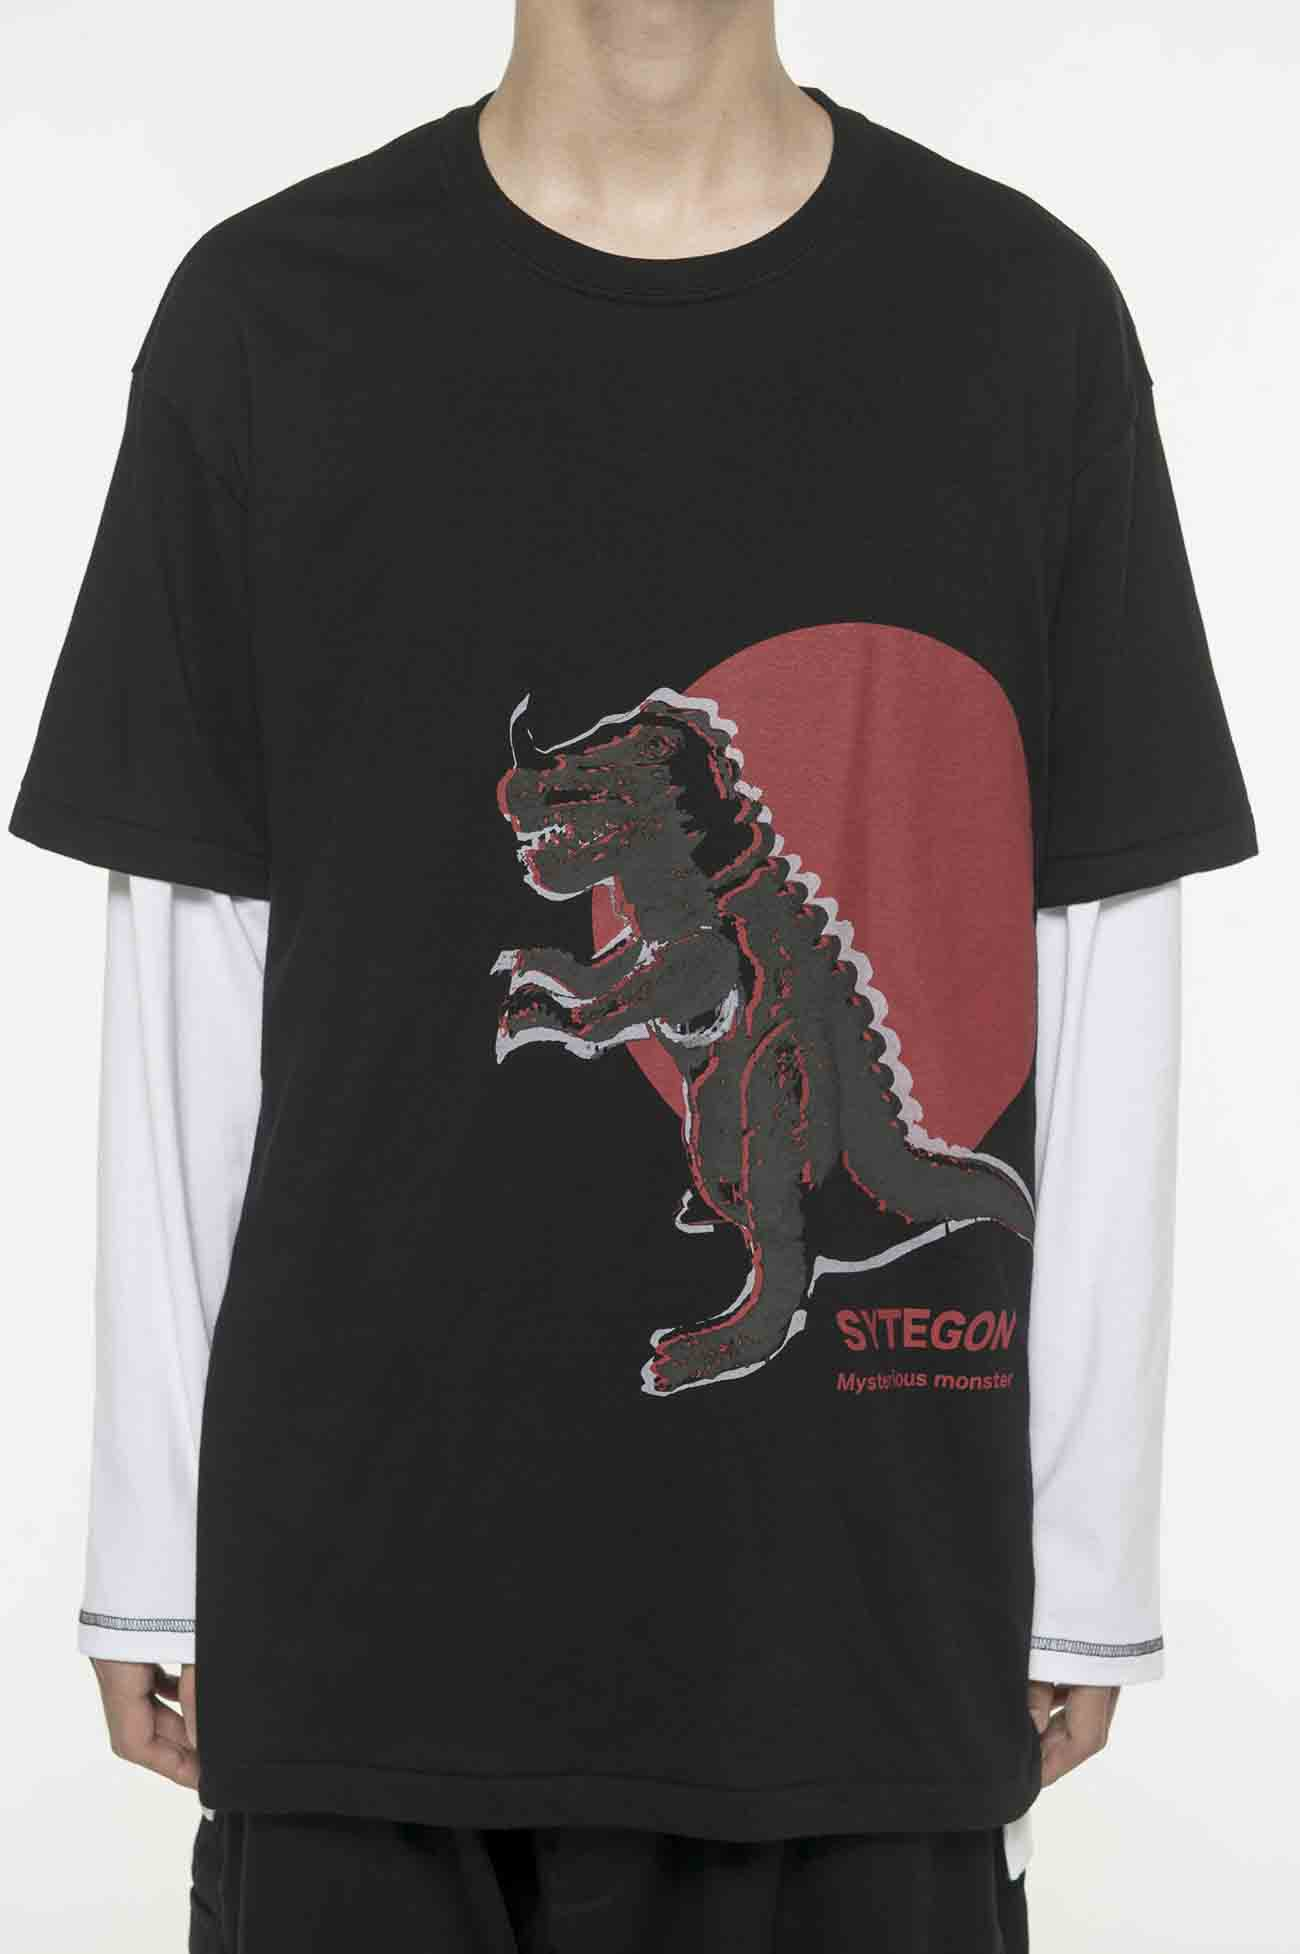 20/CottonJersey Soft Vinyl Monster SYTEGON T-Shirt